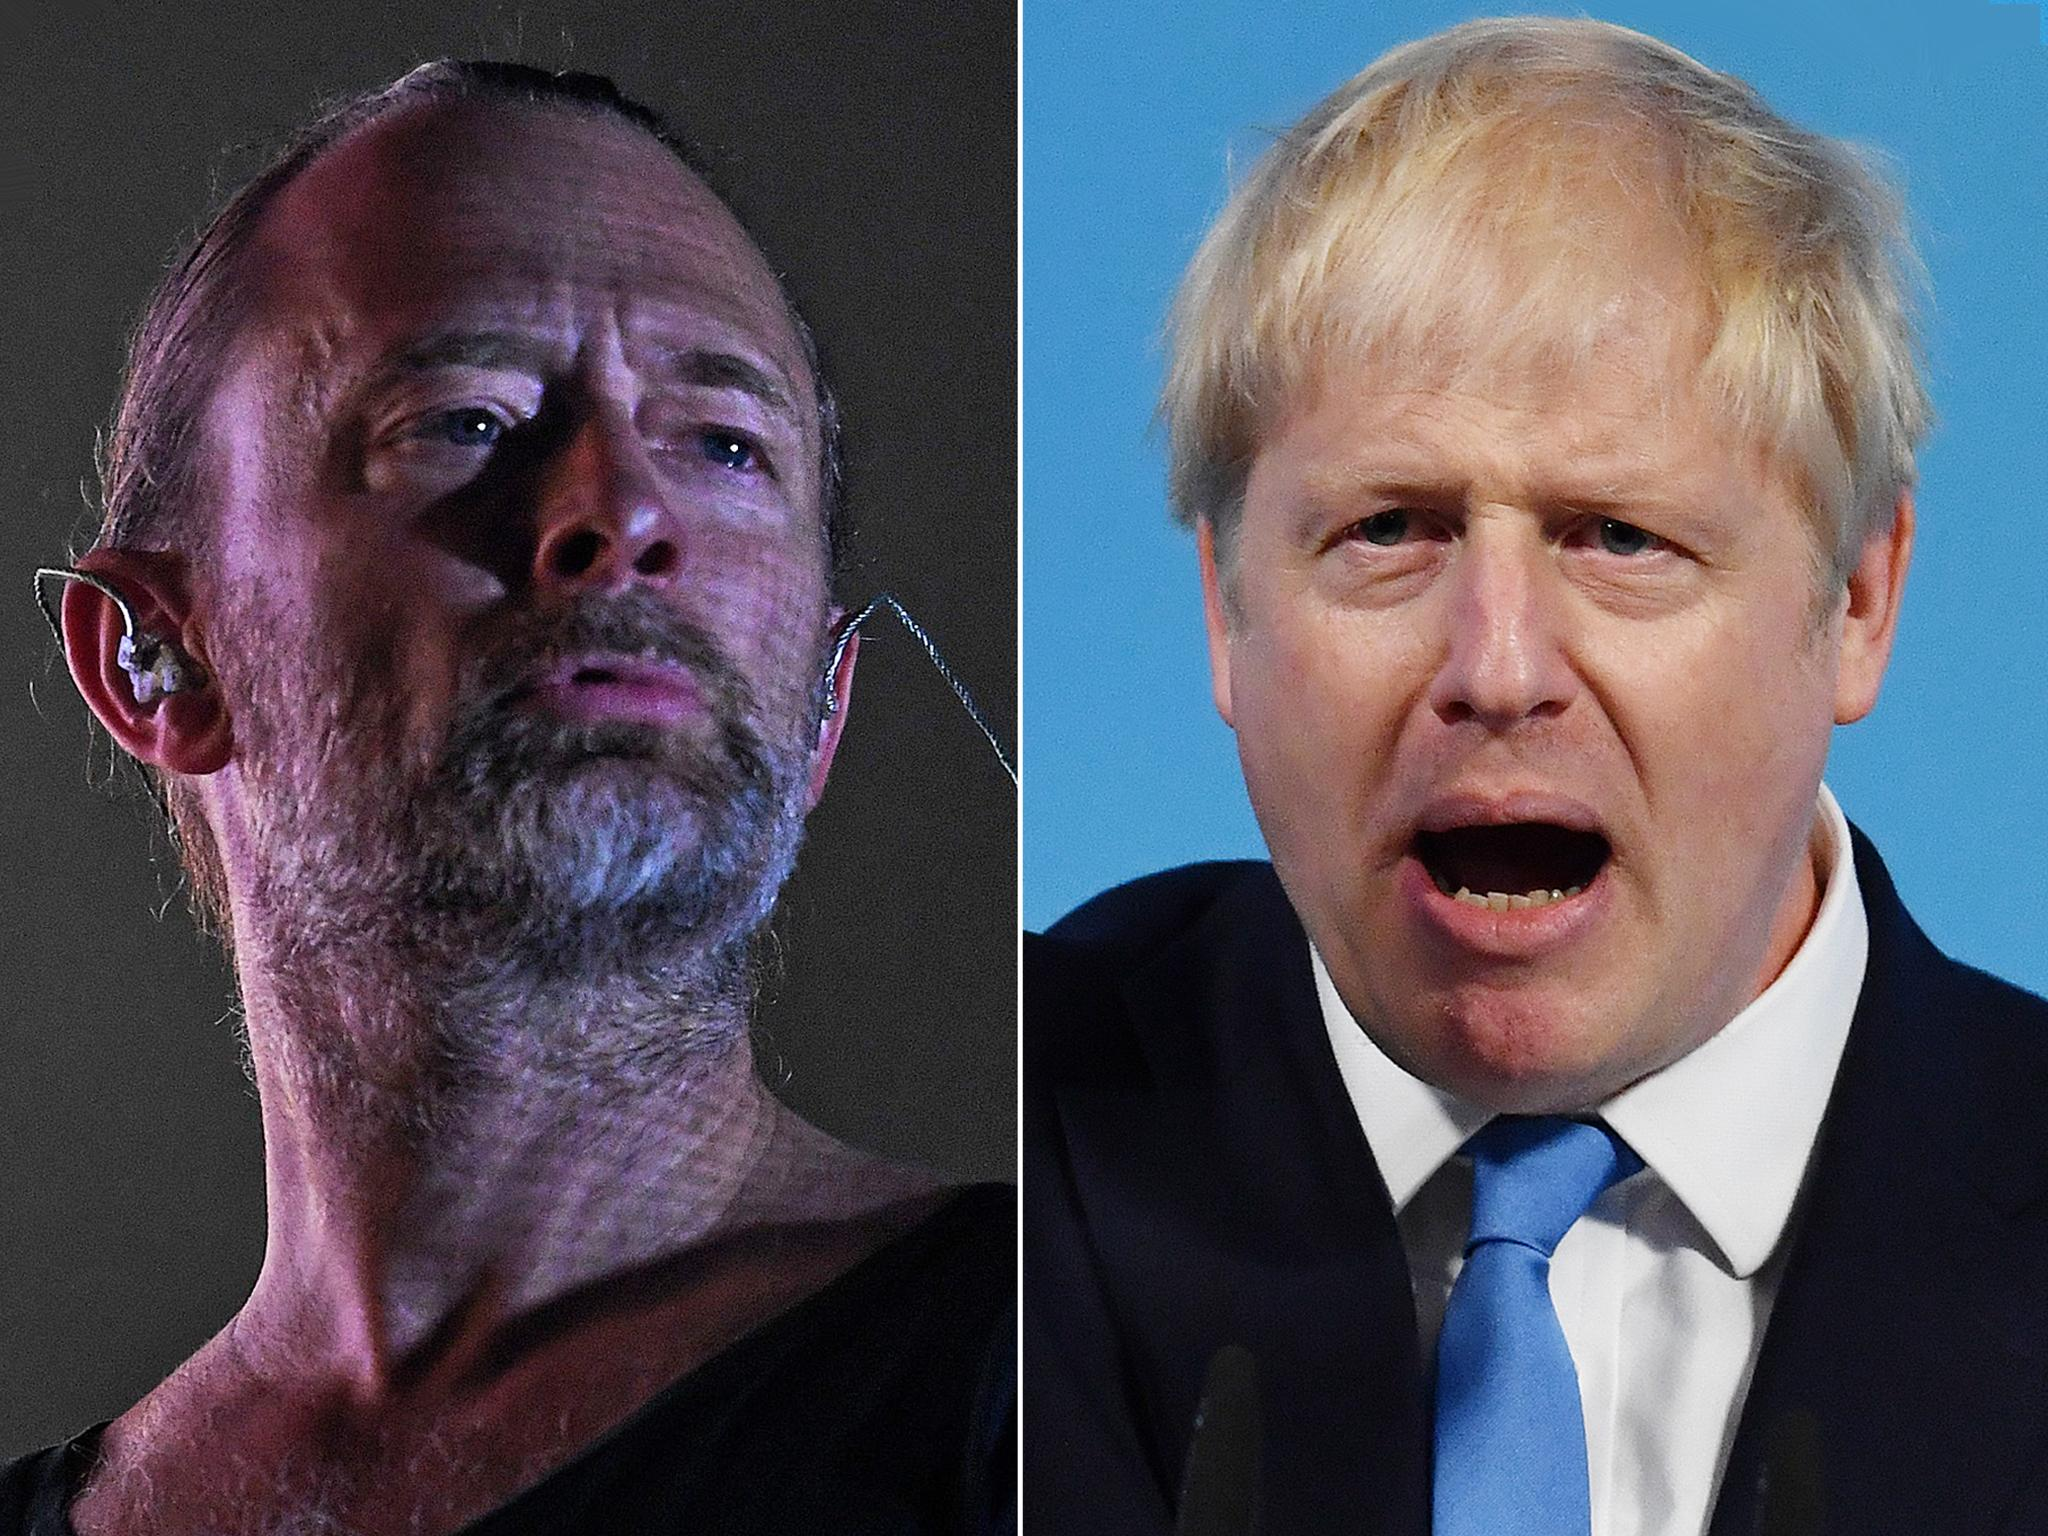 Thom Yorke leads 'F*** you Prime Minister' celebrity reactions to Boris Johnson